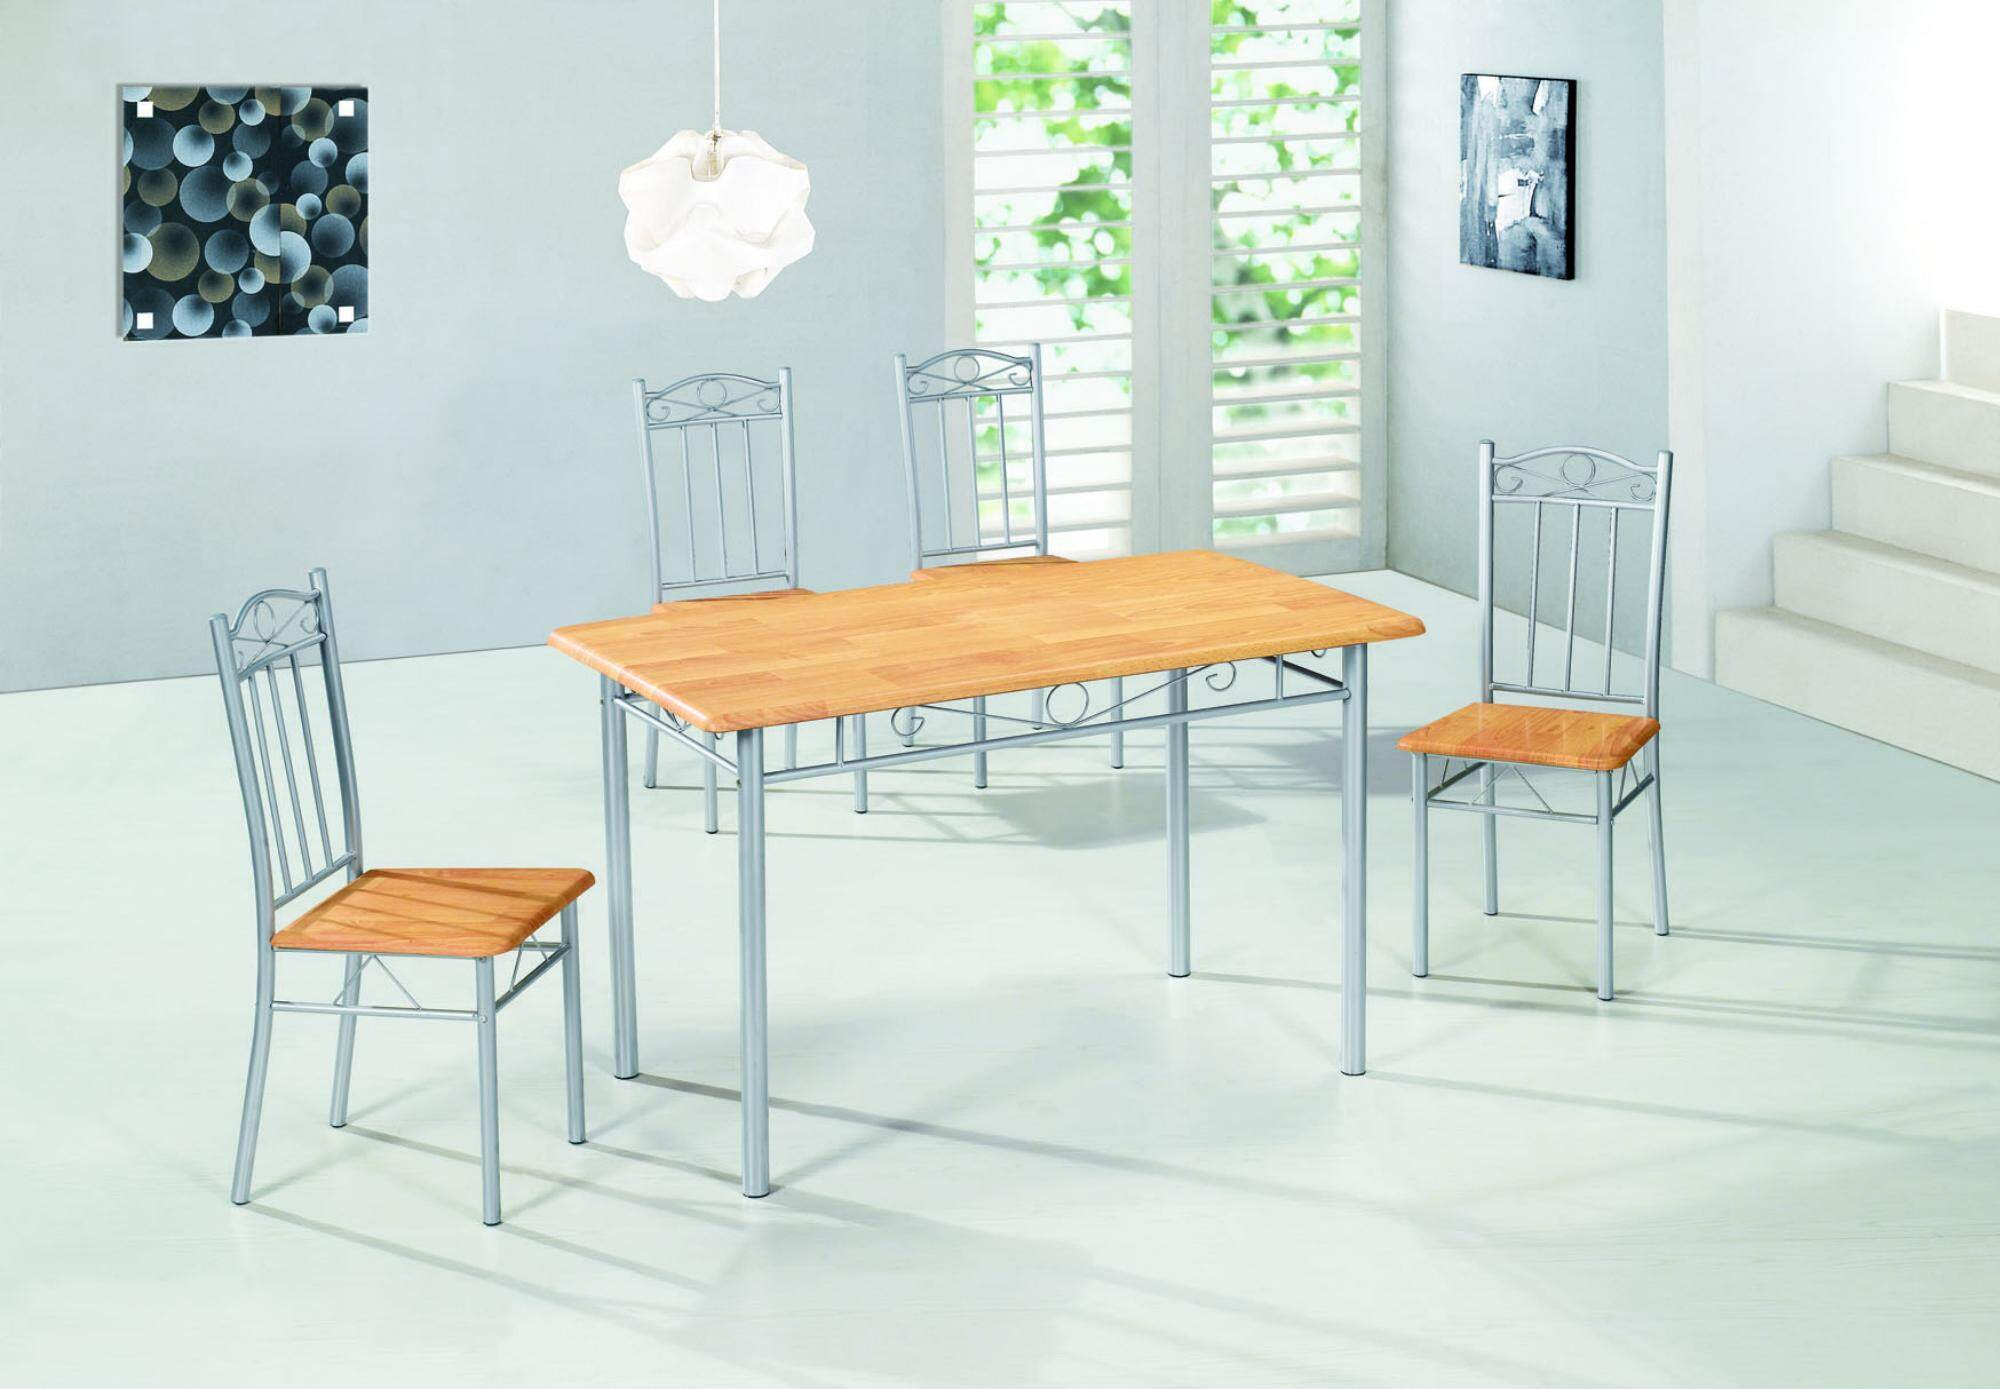 Home Kitchen & Dining Furniture - Buy Home Kitchen & Dining ...